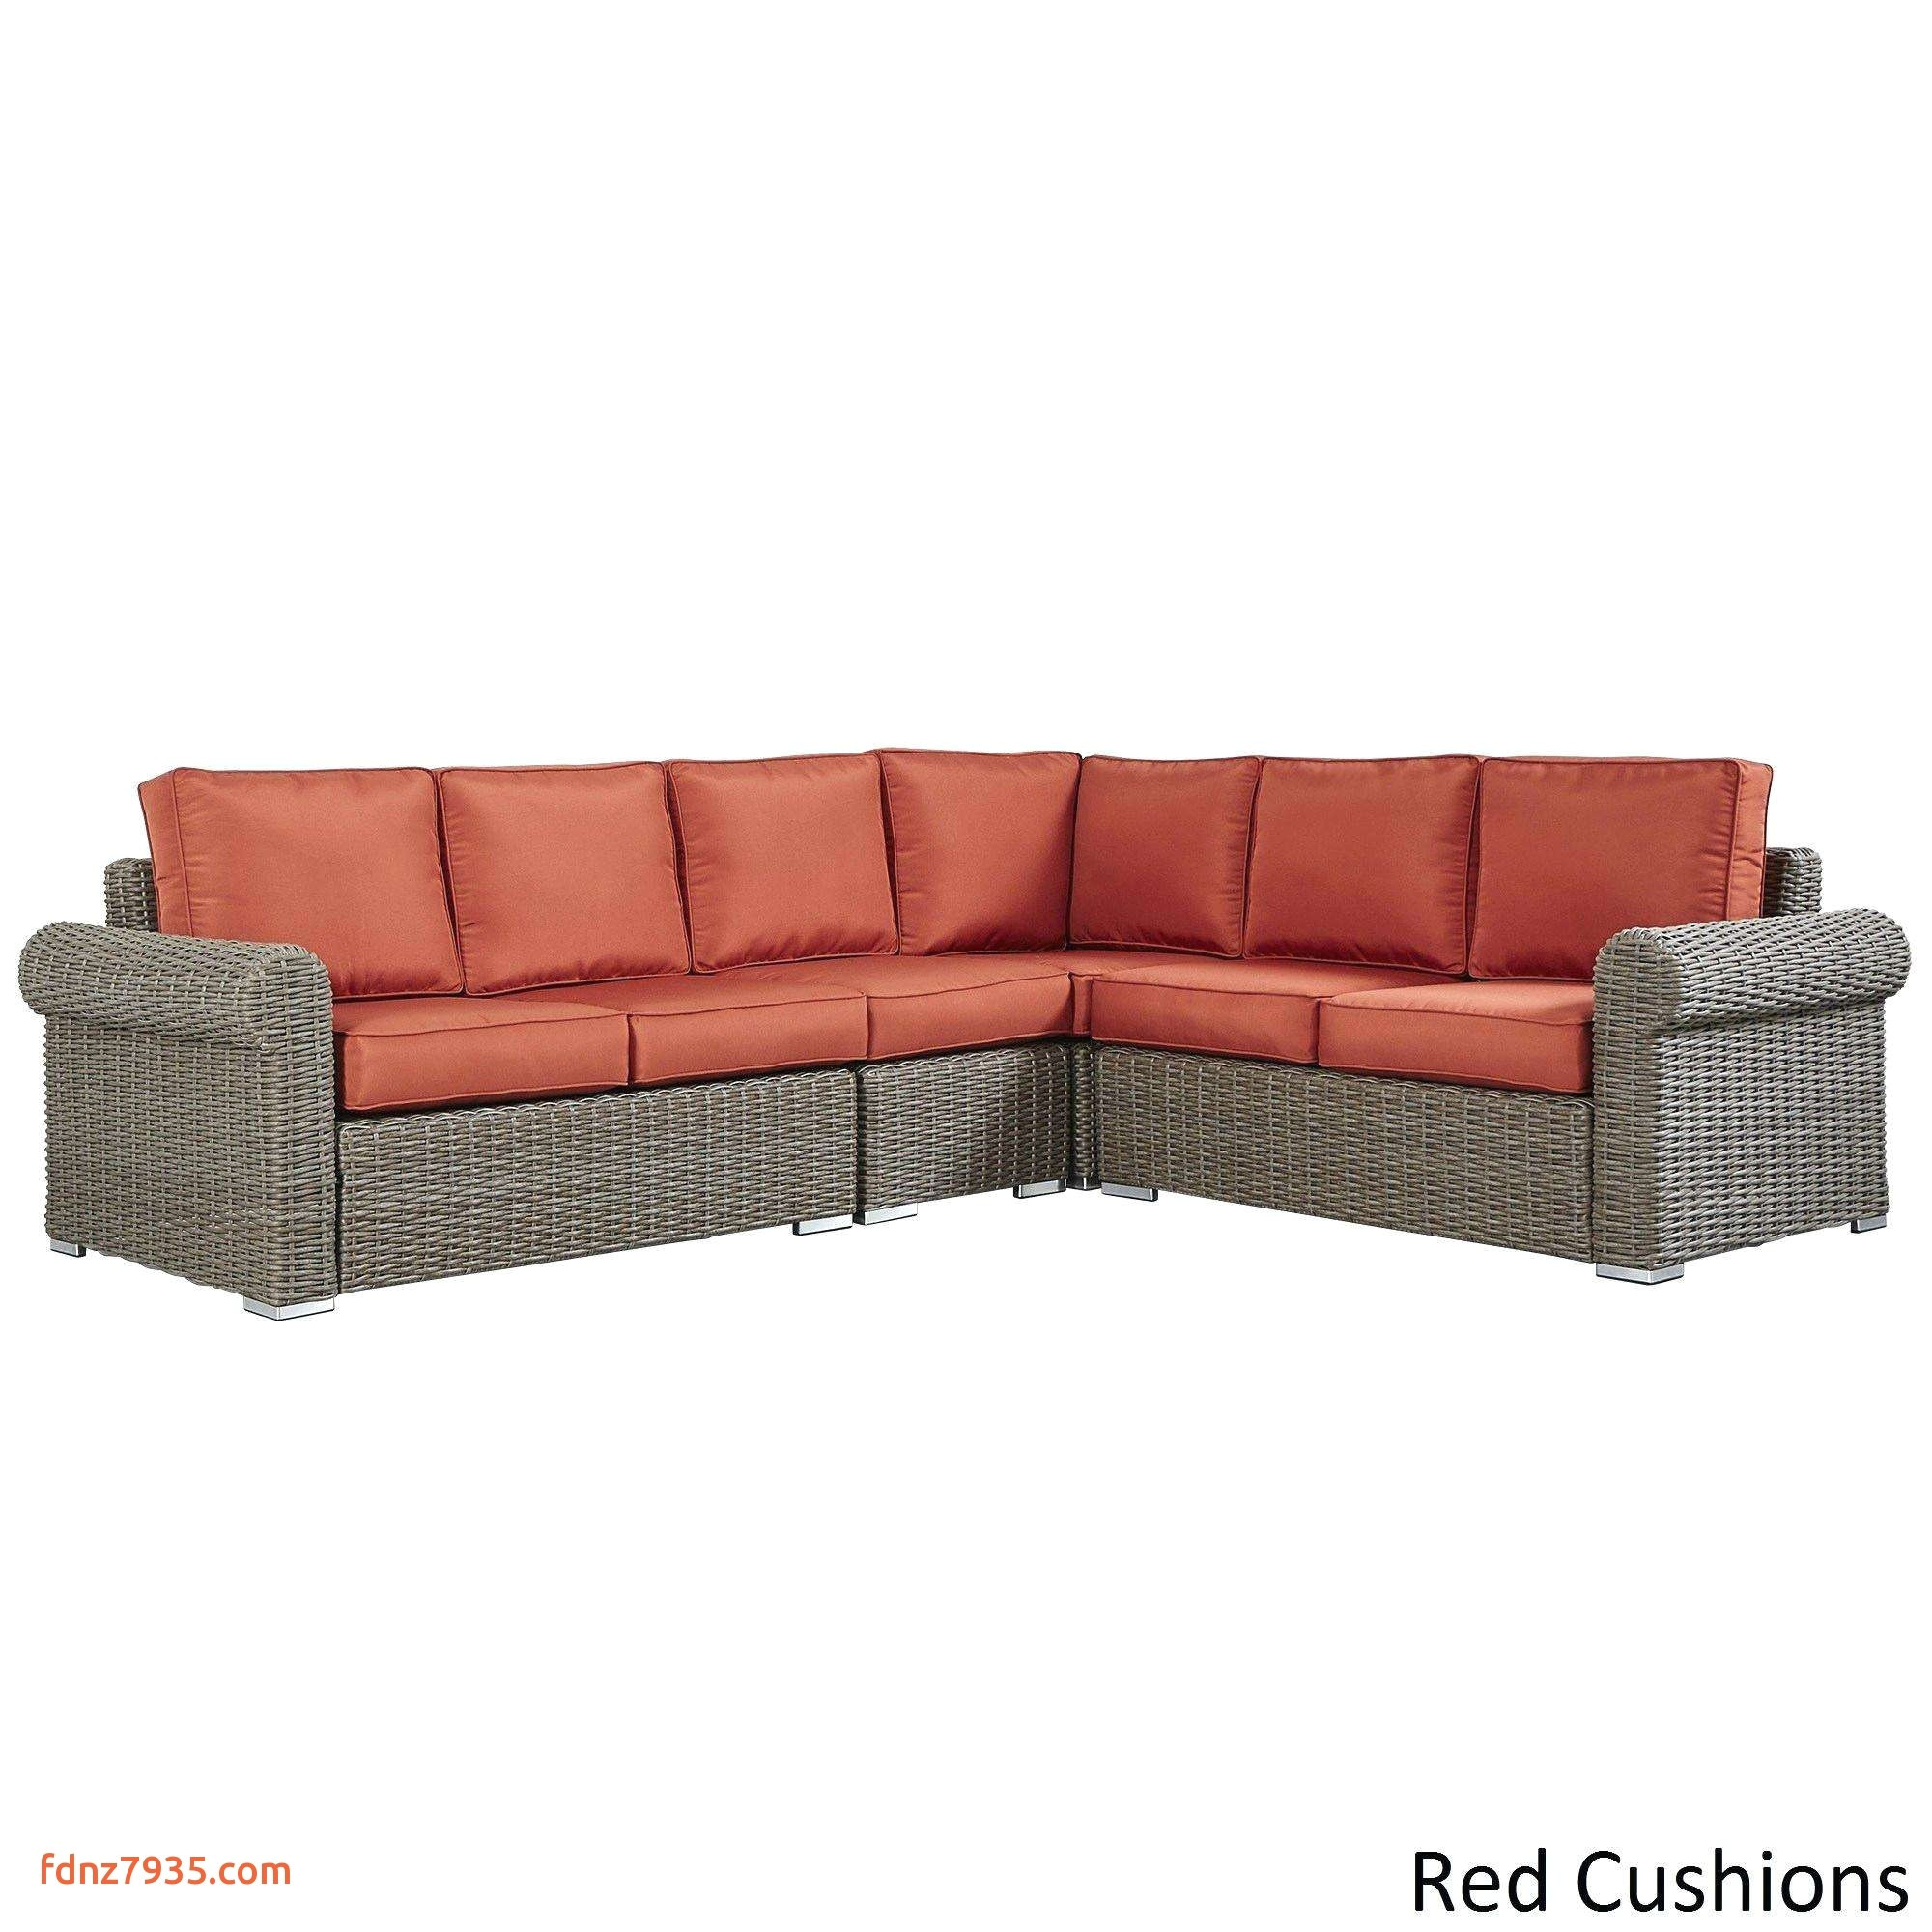 furniture that turns into a bed unique wicker outdoor sofa 0d patio chairs sale replacement cushions